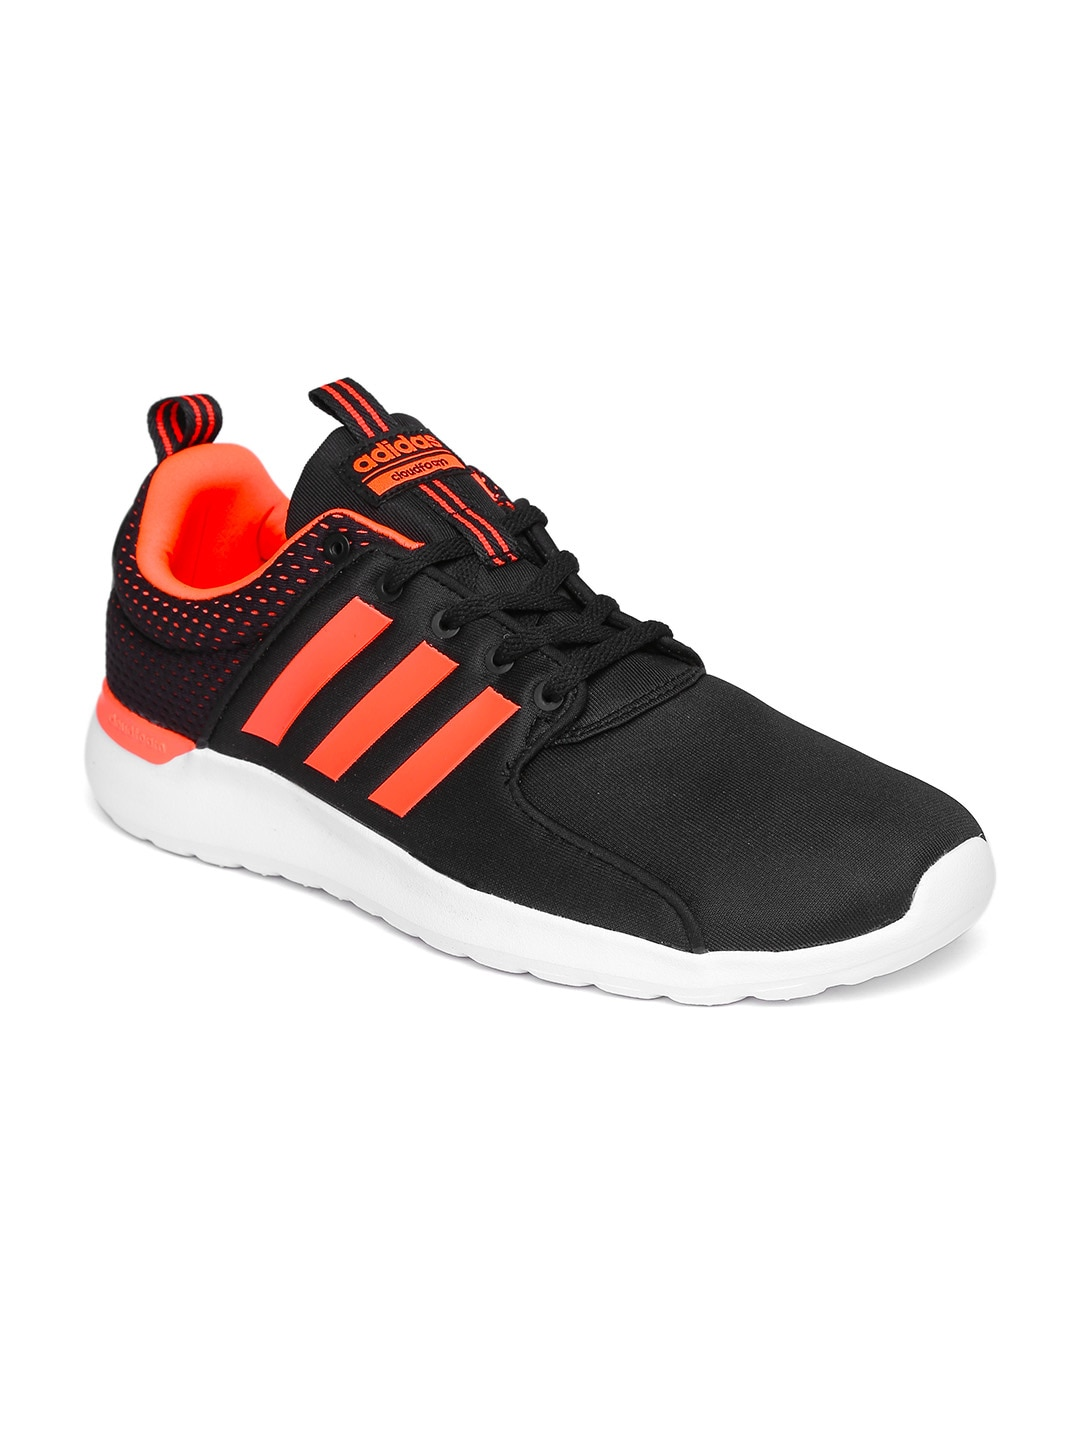 Adidas Neo Label Casual Shoes - Buy Adidas Neo Label Casual Shoes online in  India c2982ad68